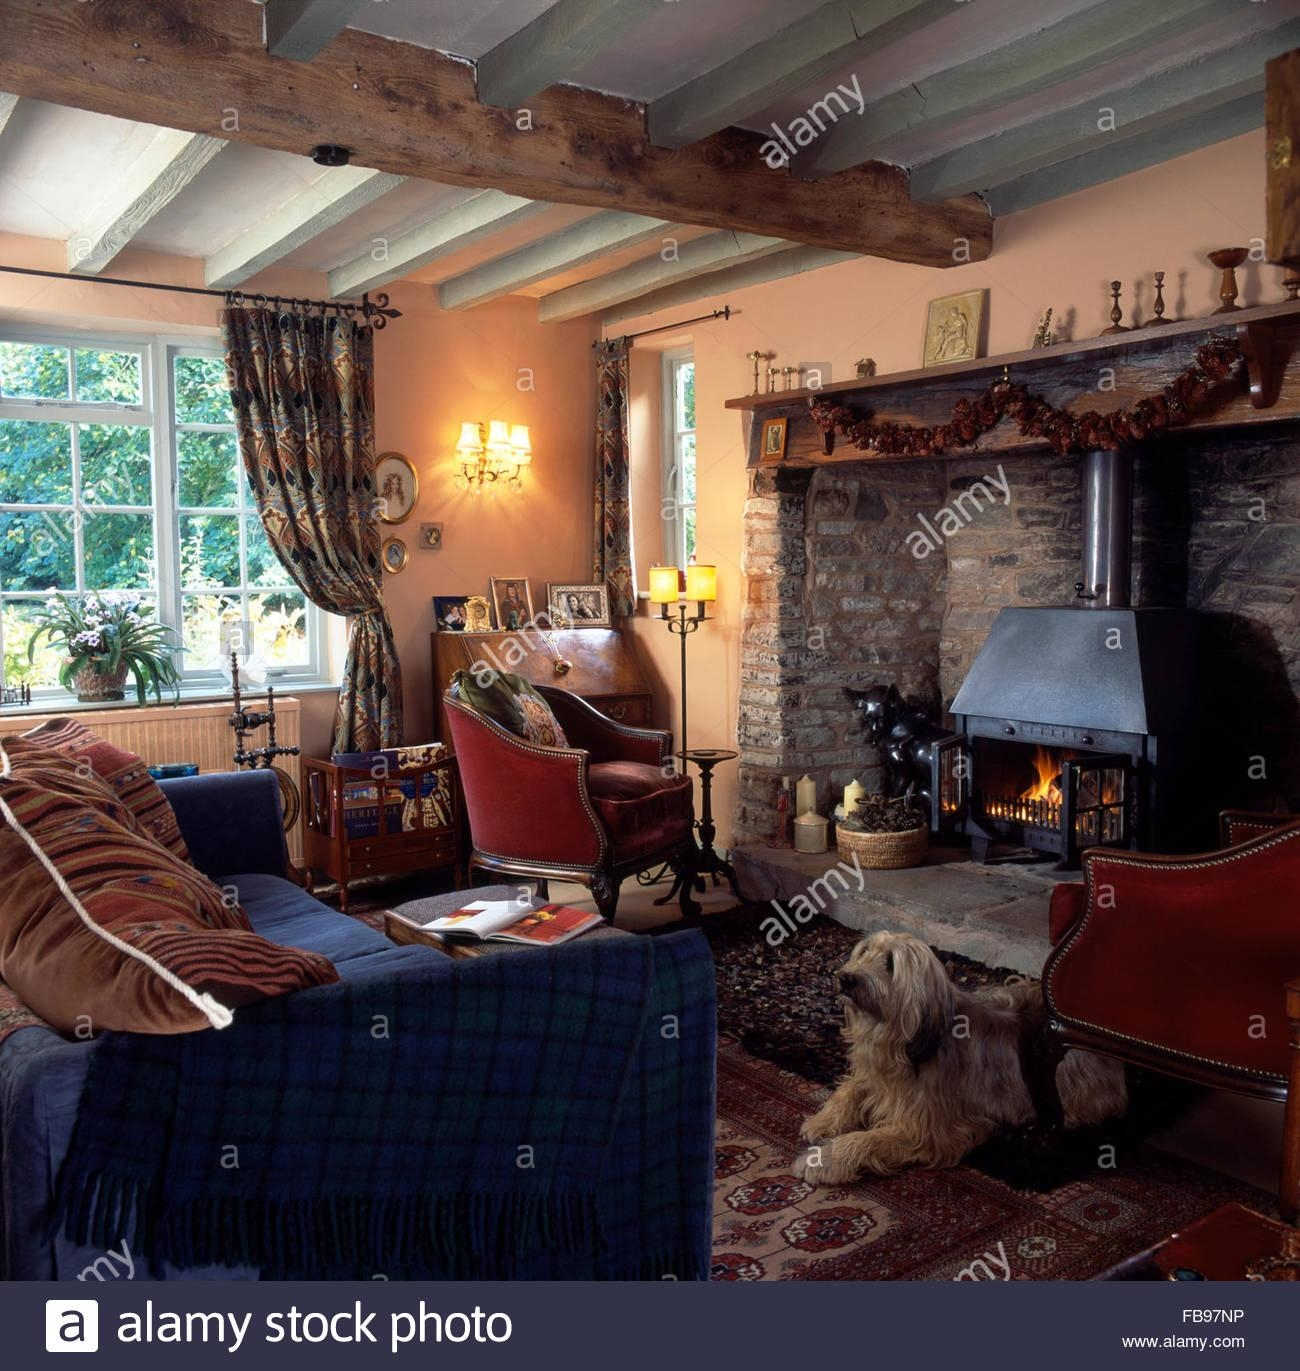 Blue Sofa And Red Chairs In Country Sitting Room With A Wood Pertaining To Country Sofas And Chairs (View 20 of 20)